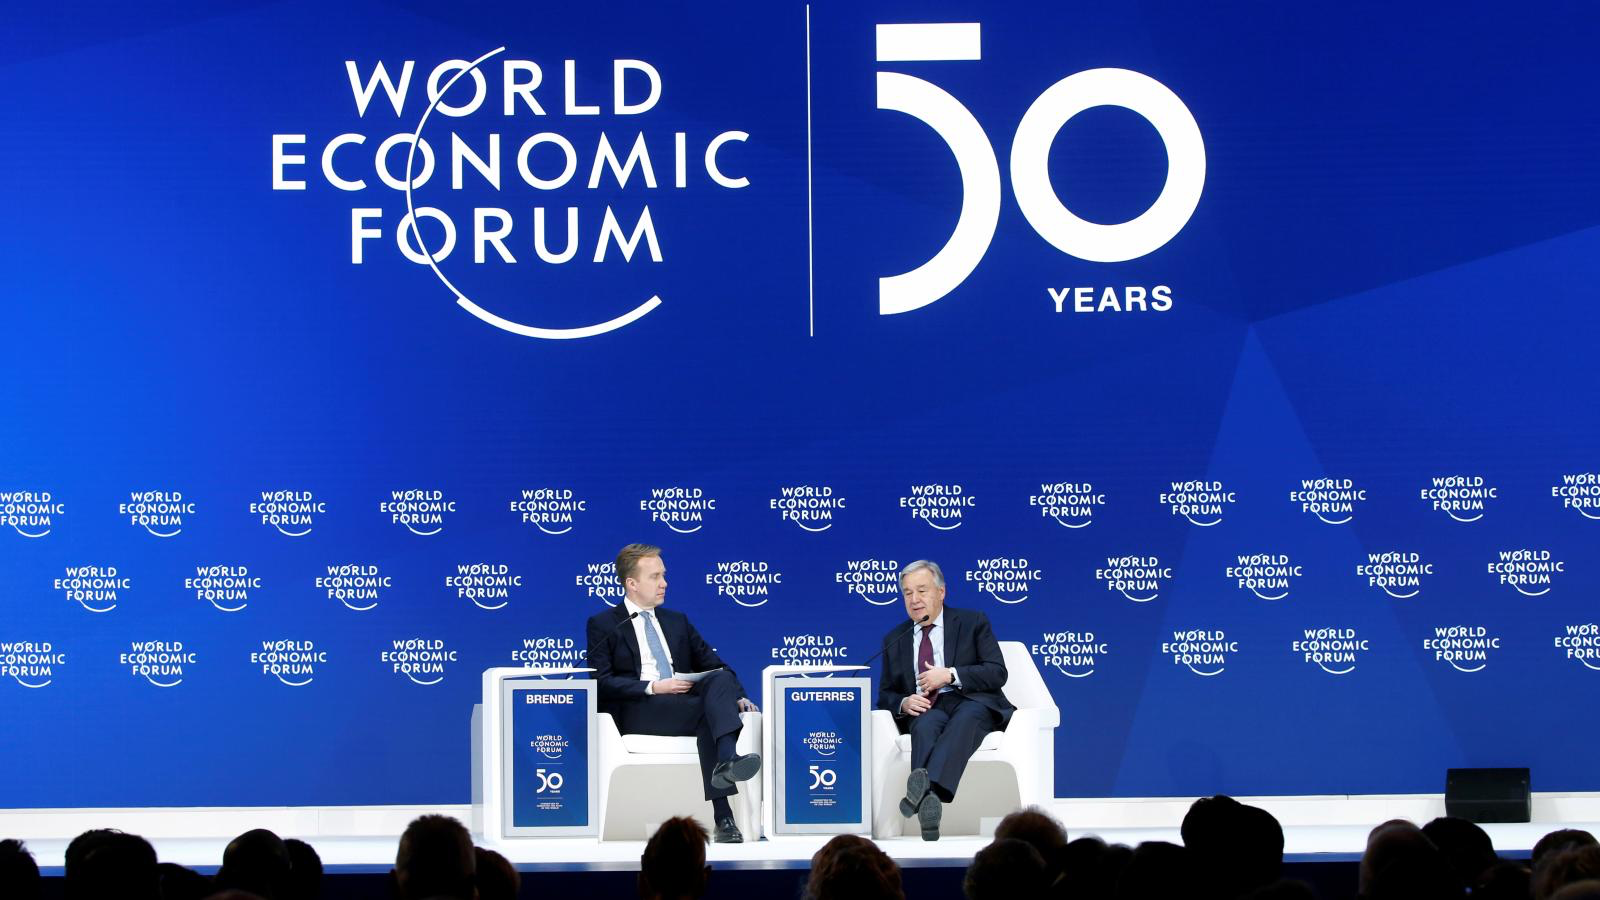 The Davos World Economic Forum